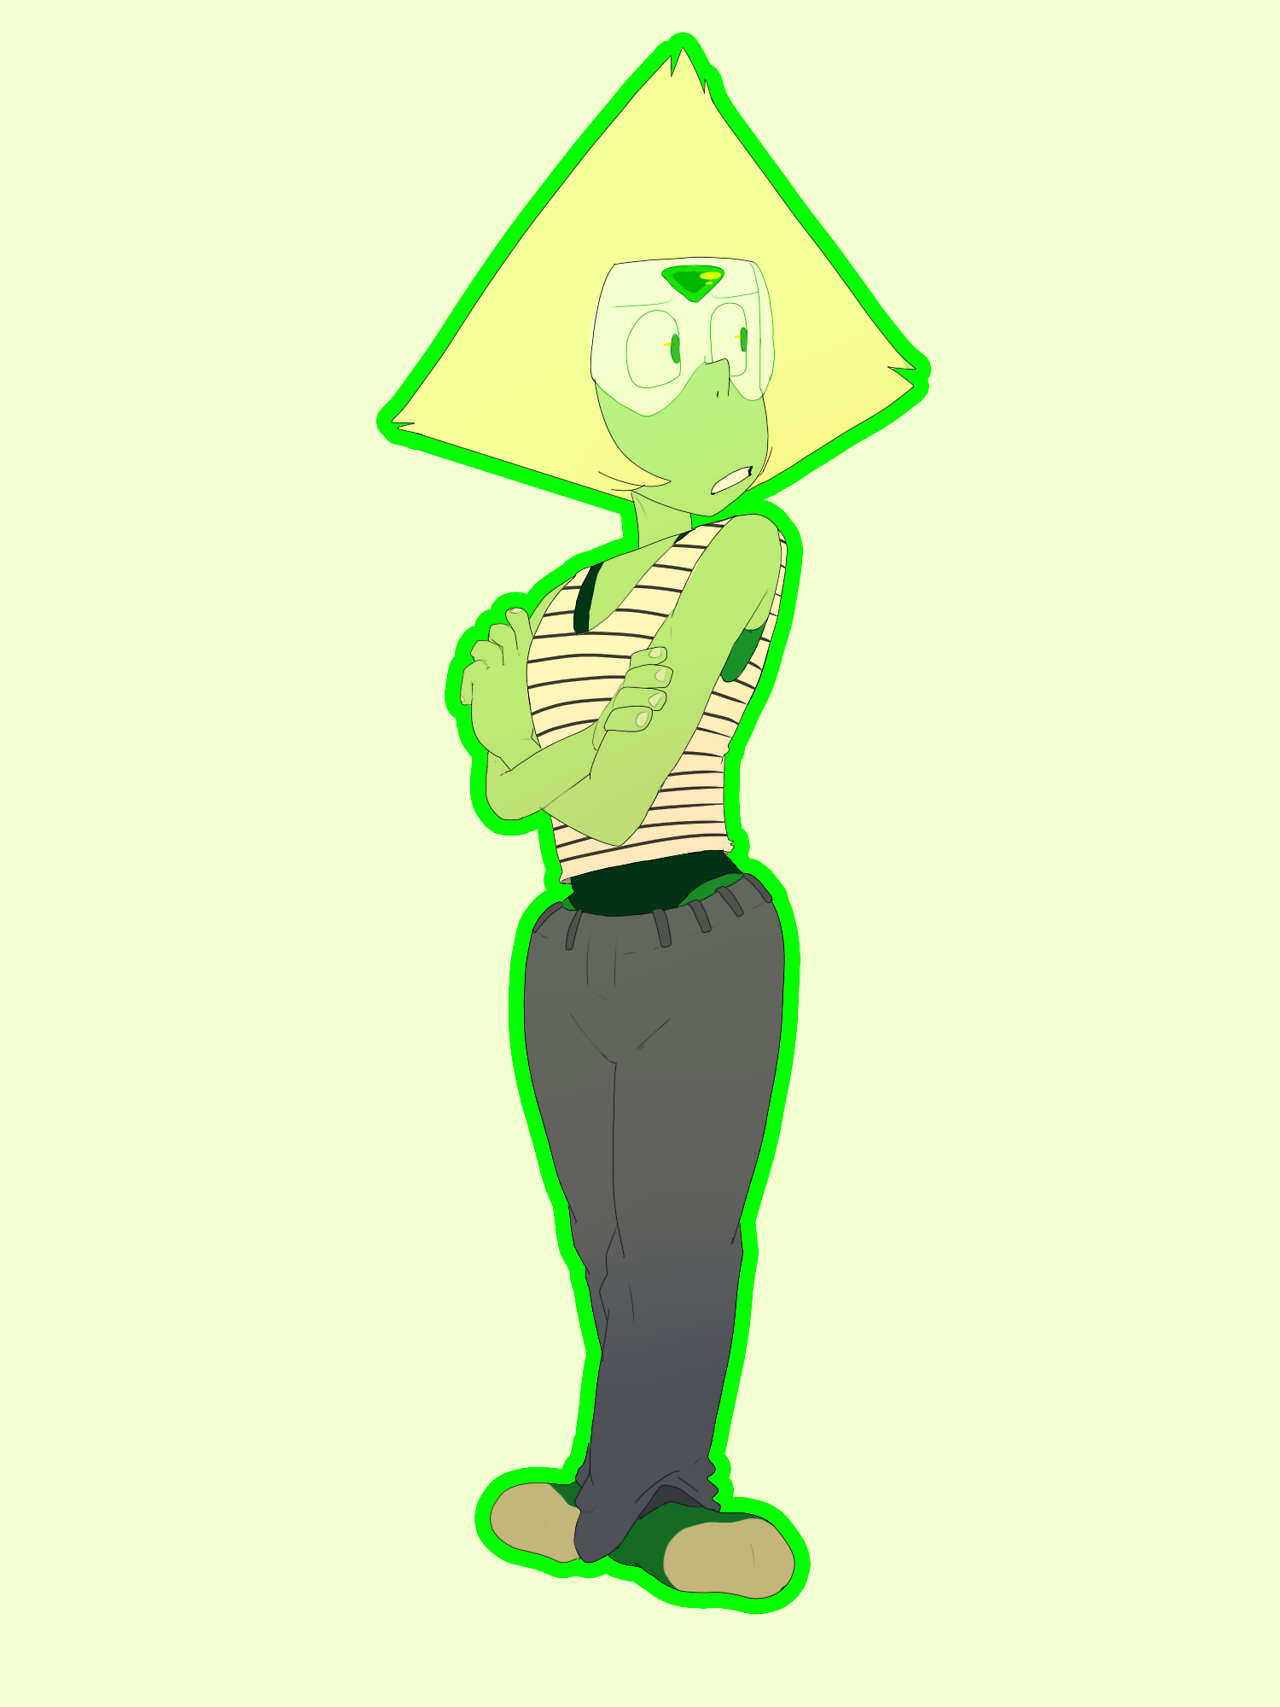 wanted to draw her in pants